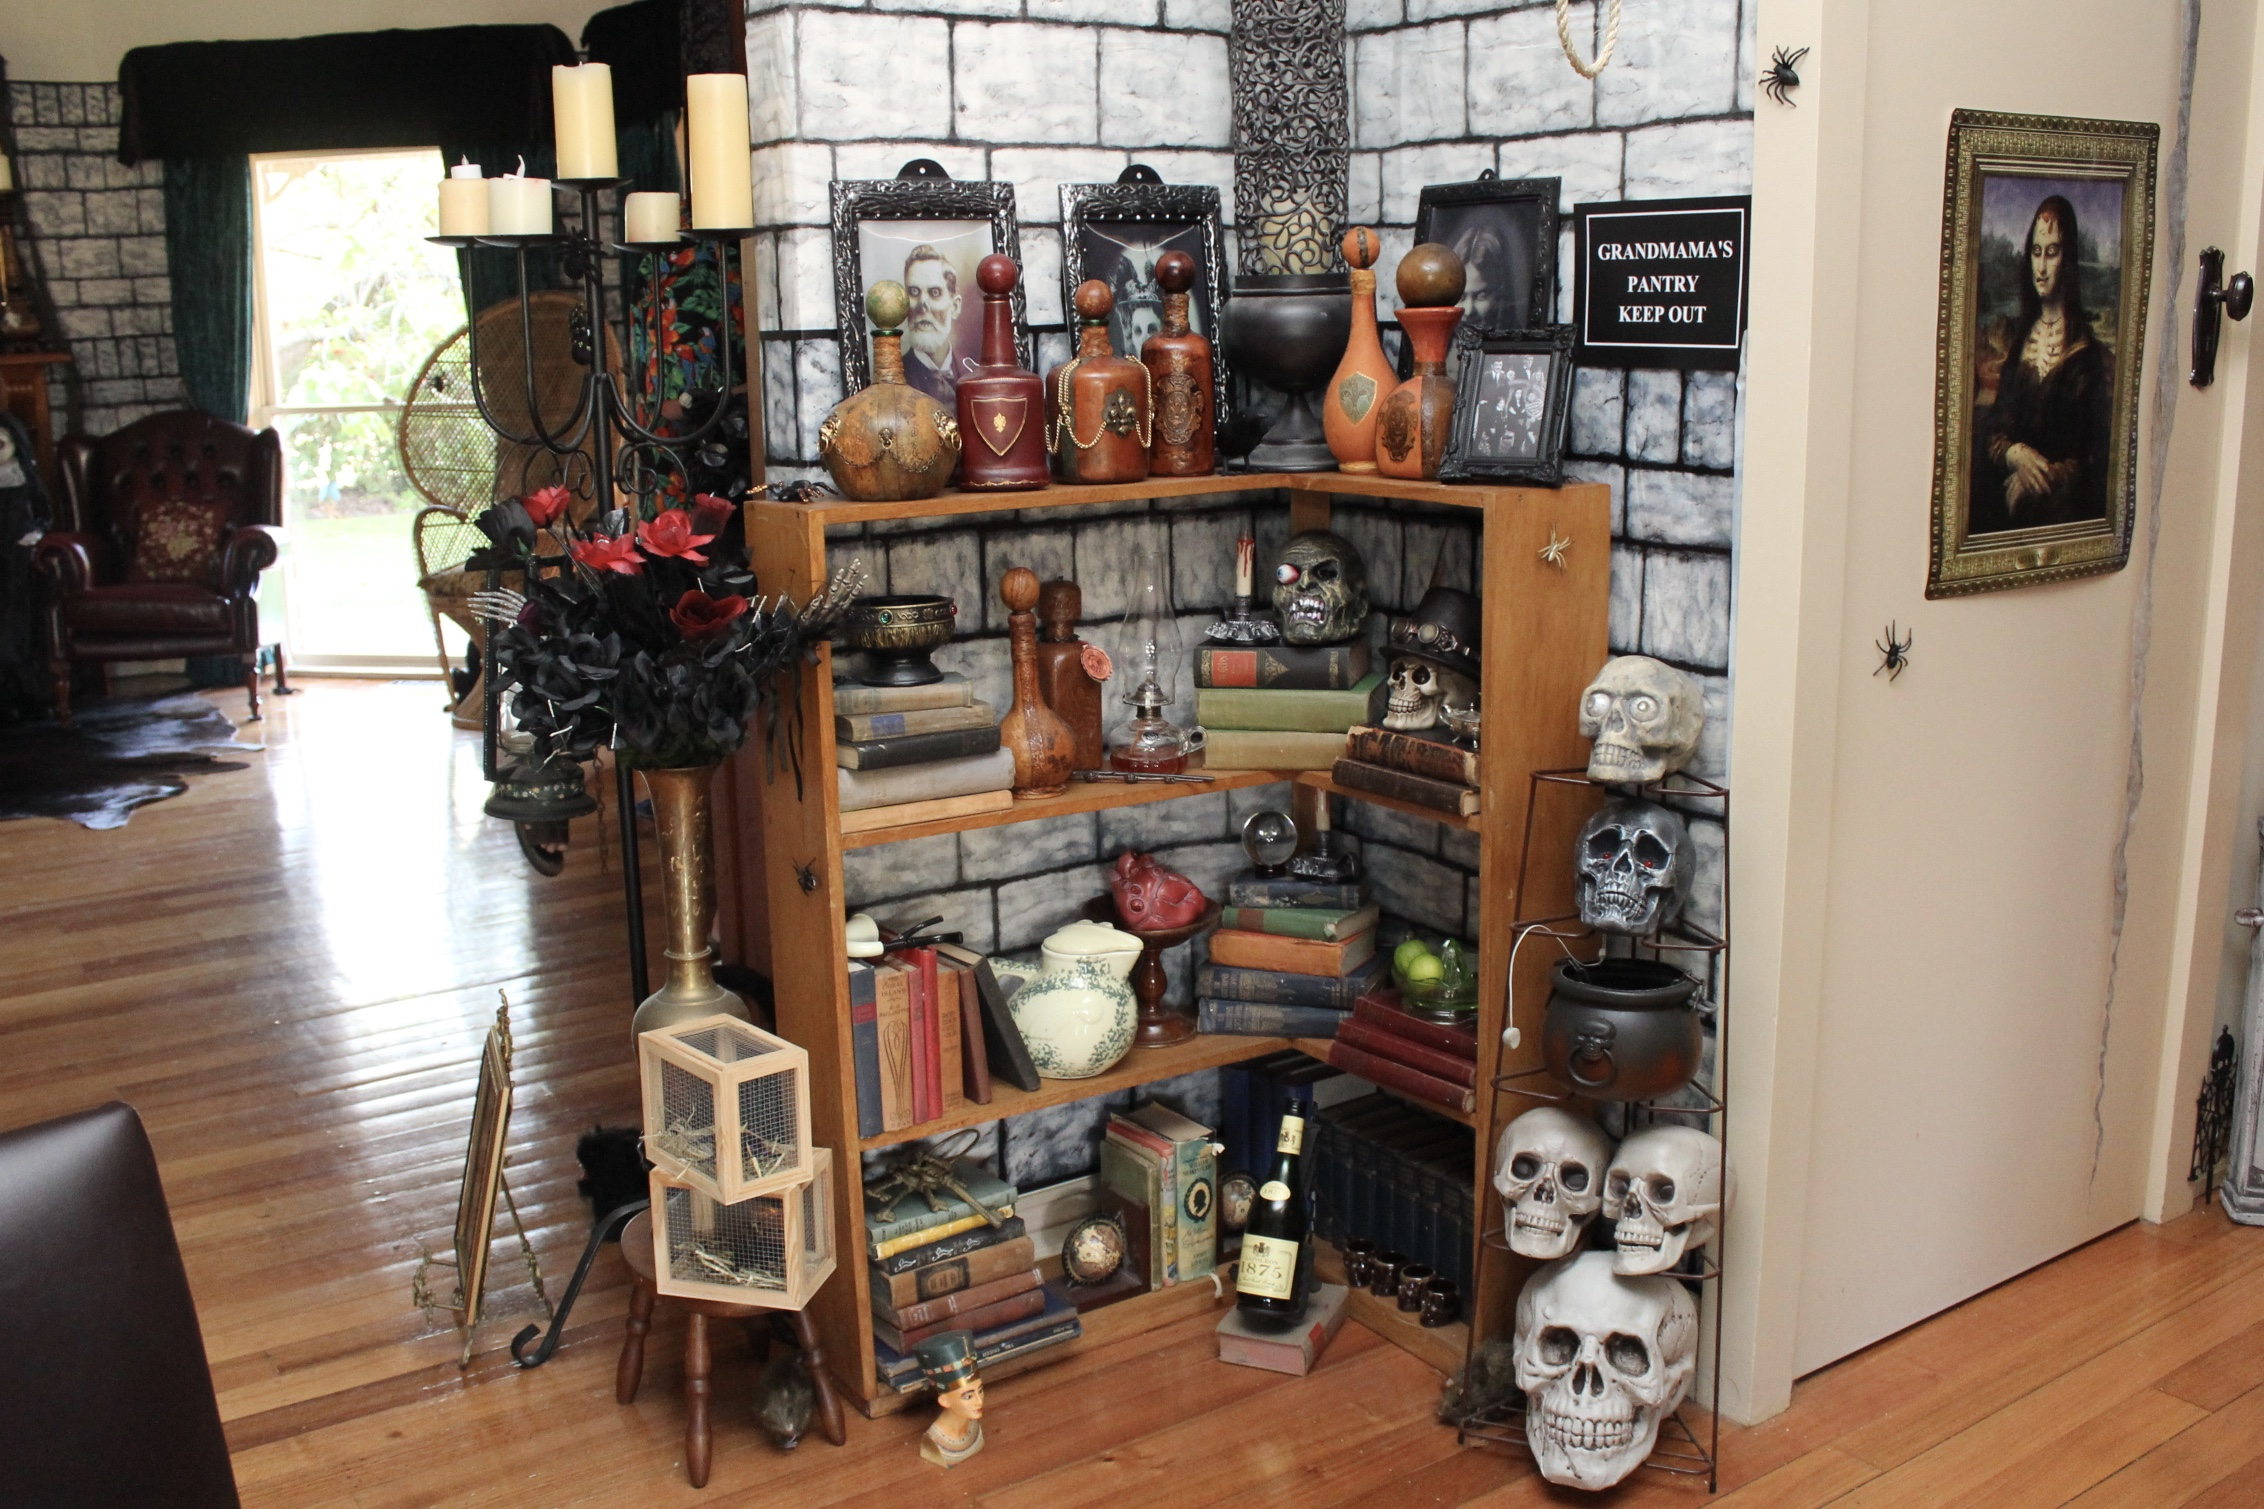 The Addams Family Party Ideas Grandmama's Pantry